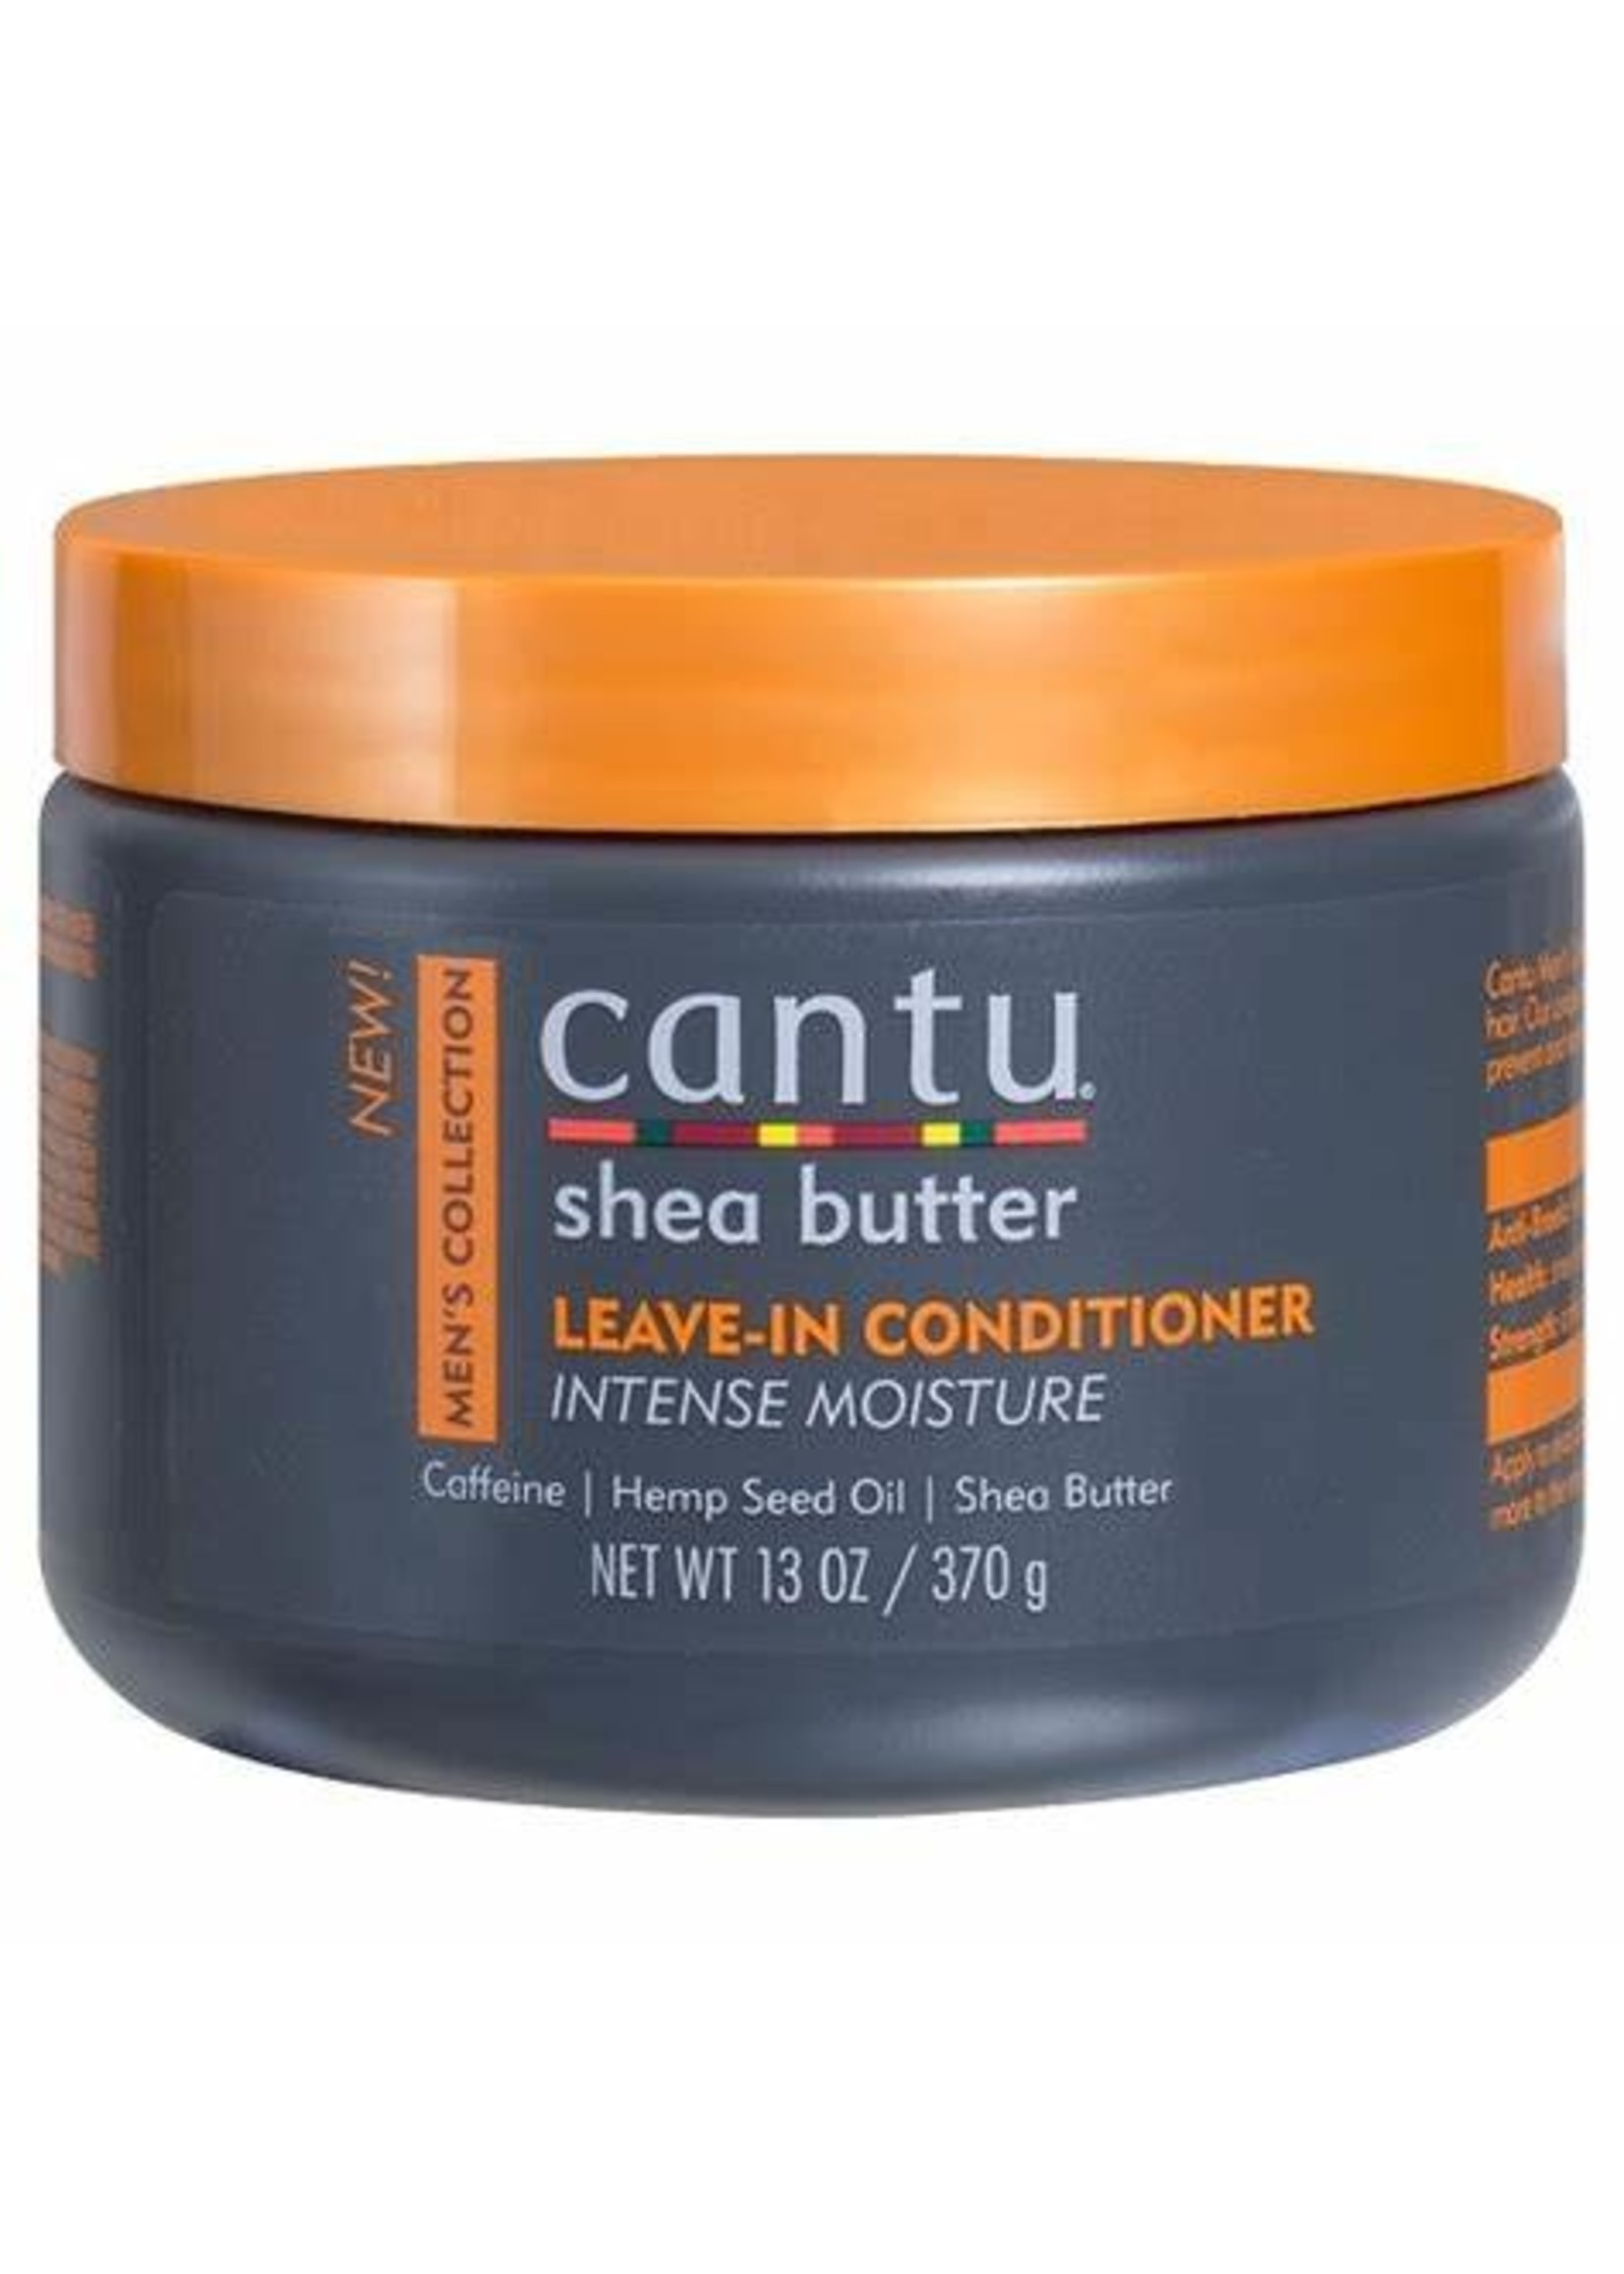 Cantu S/B Mens Leave In Conditioner